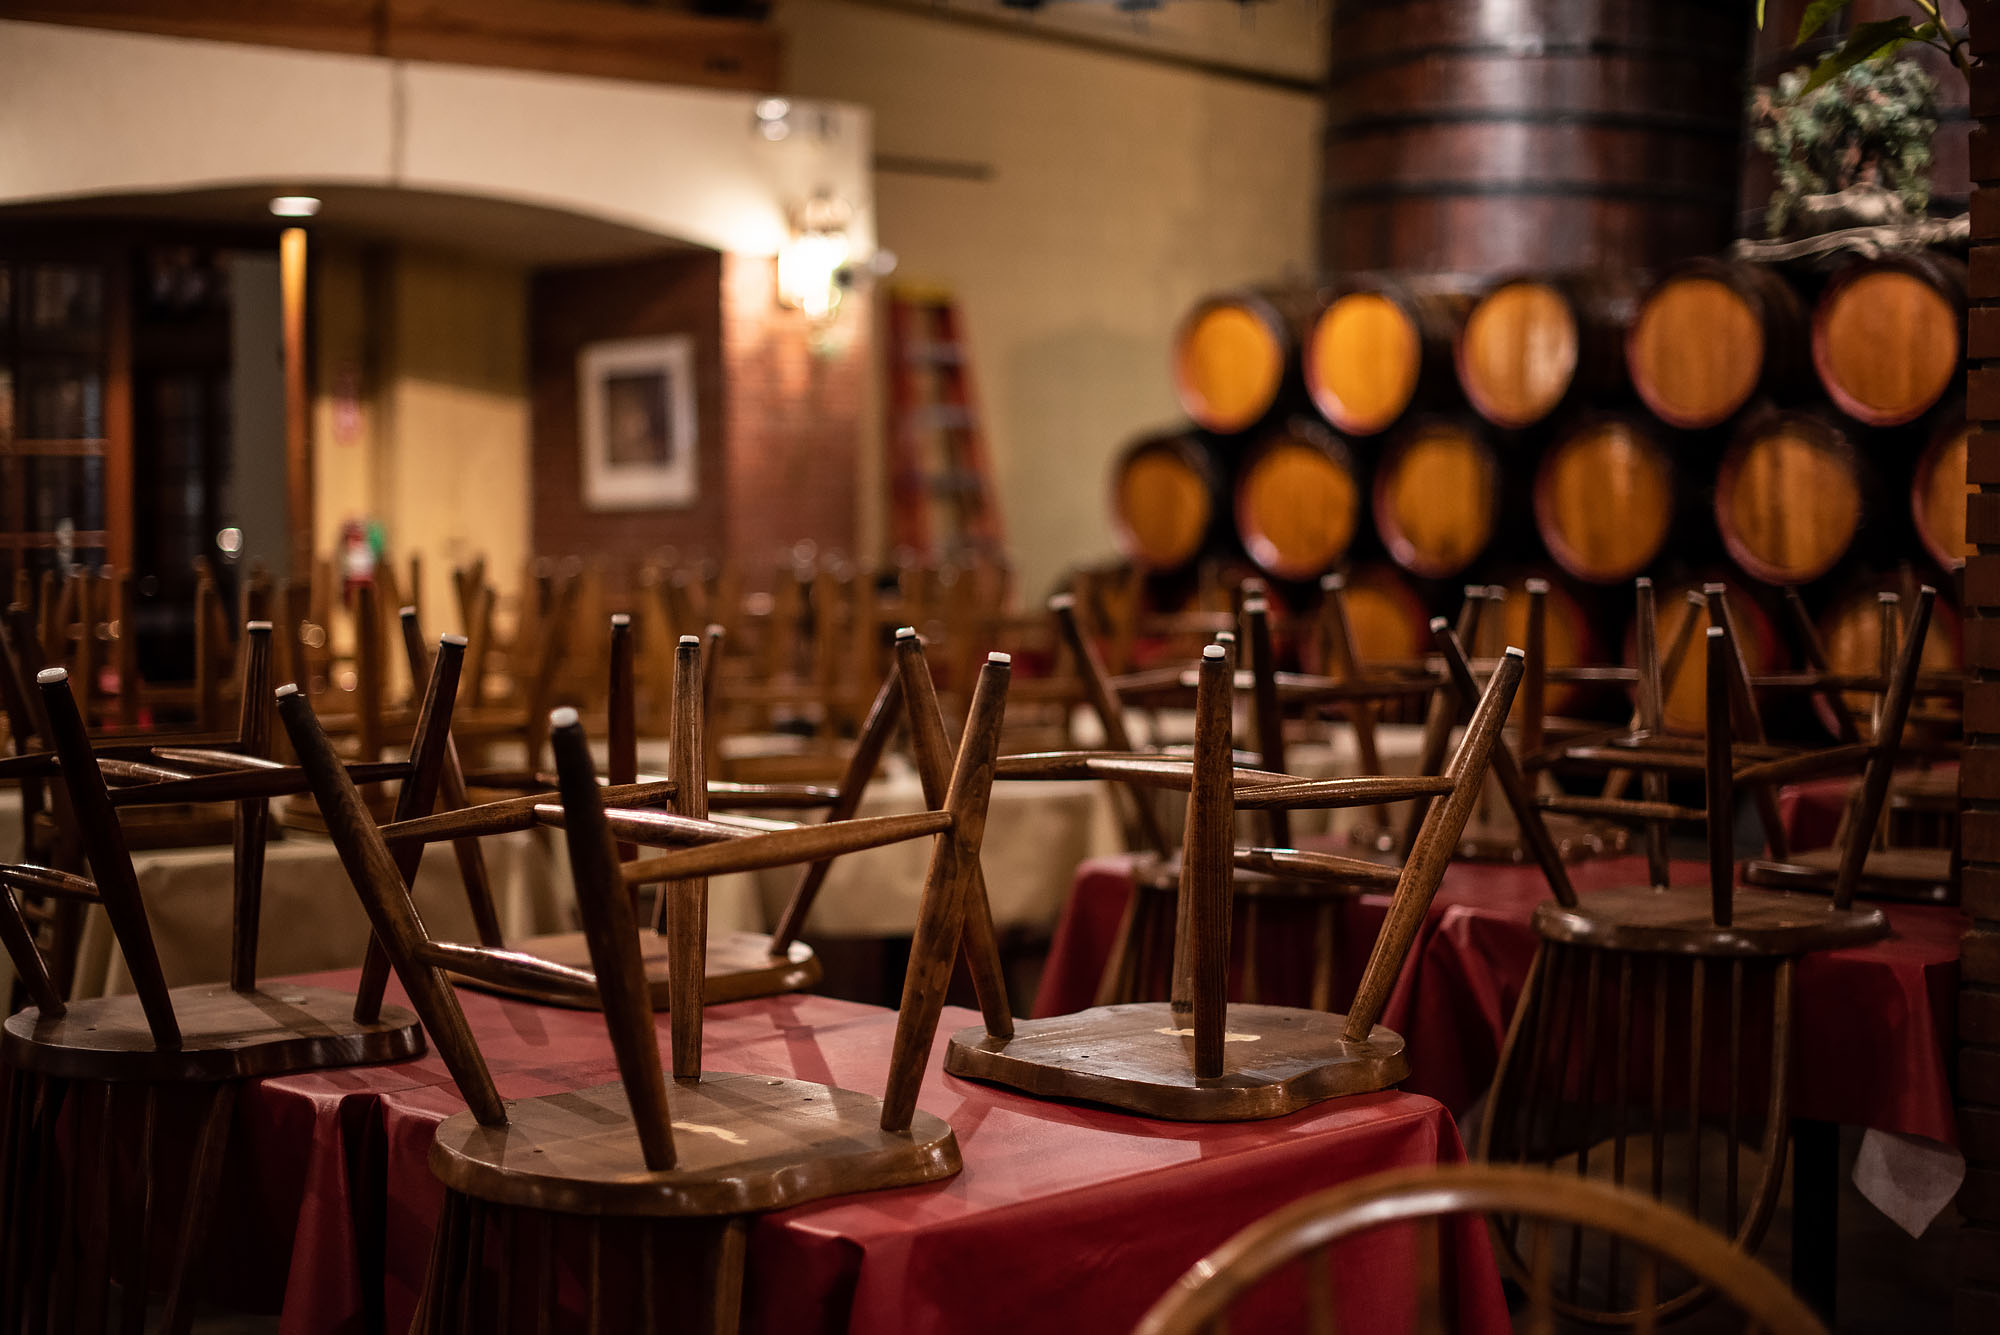 Chairs placed up at San Antonio Winery's dining room in Los Angeles